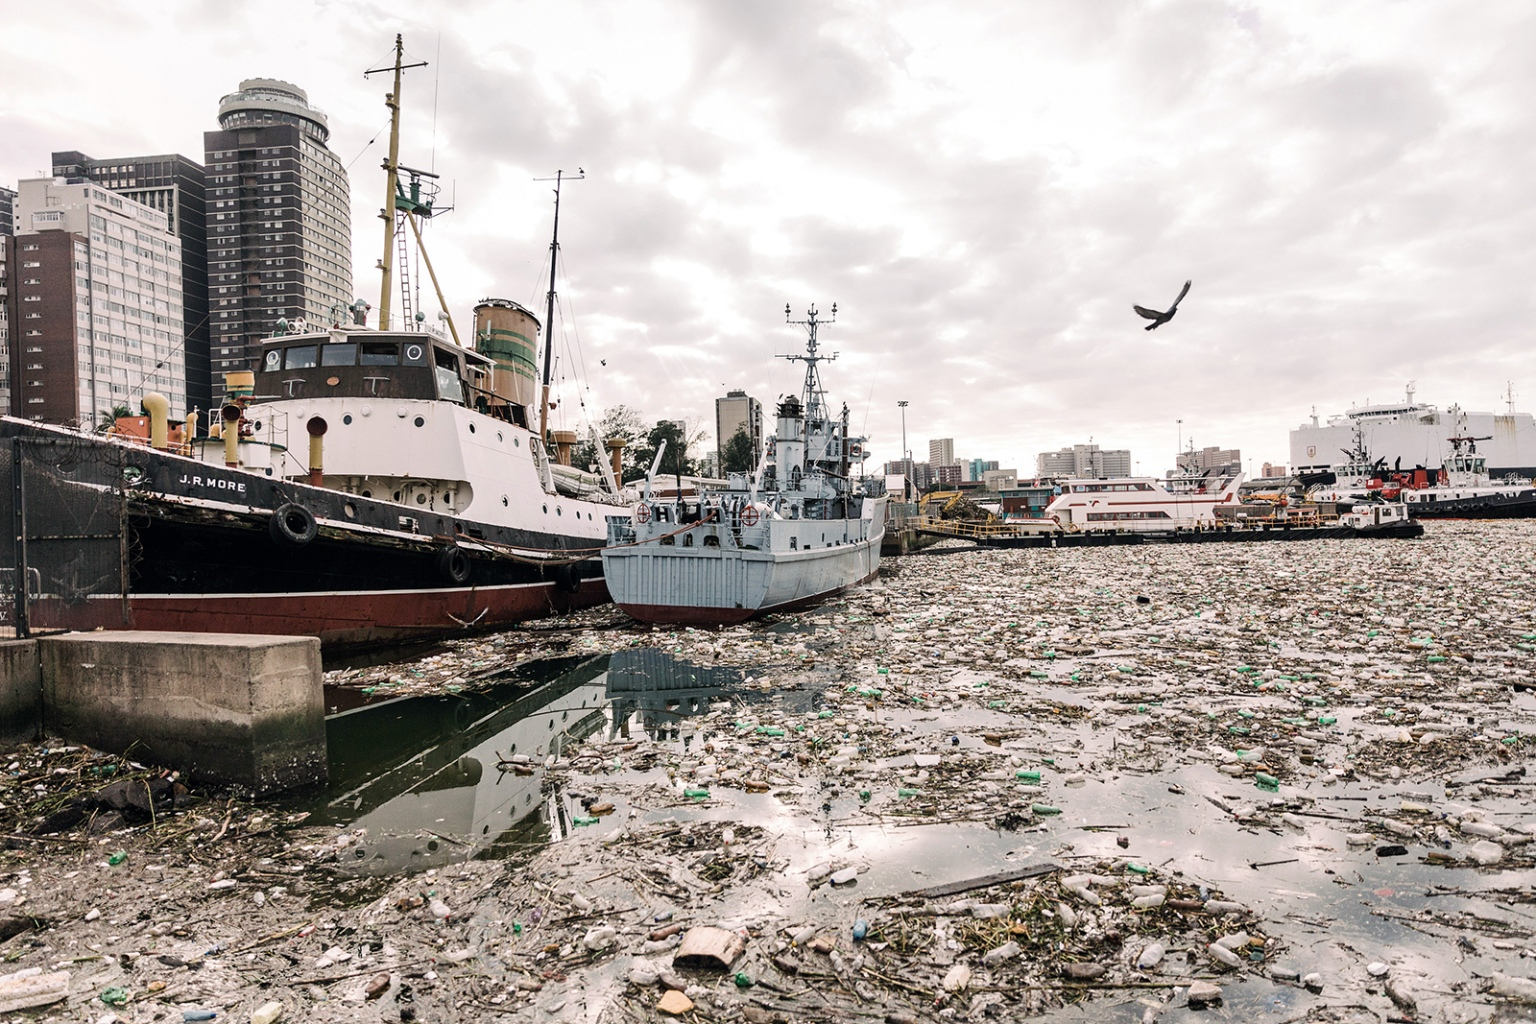 Tons of debris, mostly plastic and wood, swamped the Port of Durban, South Africa, on April 28. The port authority has commenced a major clean-up to remove the large volume of waste and vegetation after recent heavy rains and flooding.  RAJESH JANTILAL/AFP/Getty Images